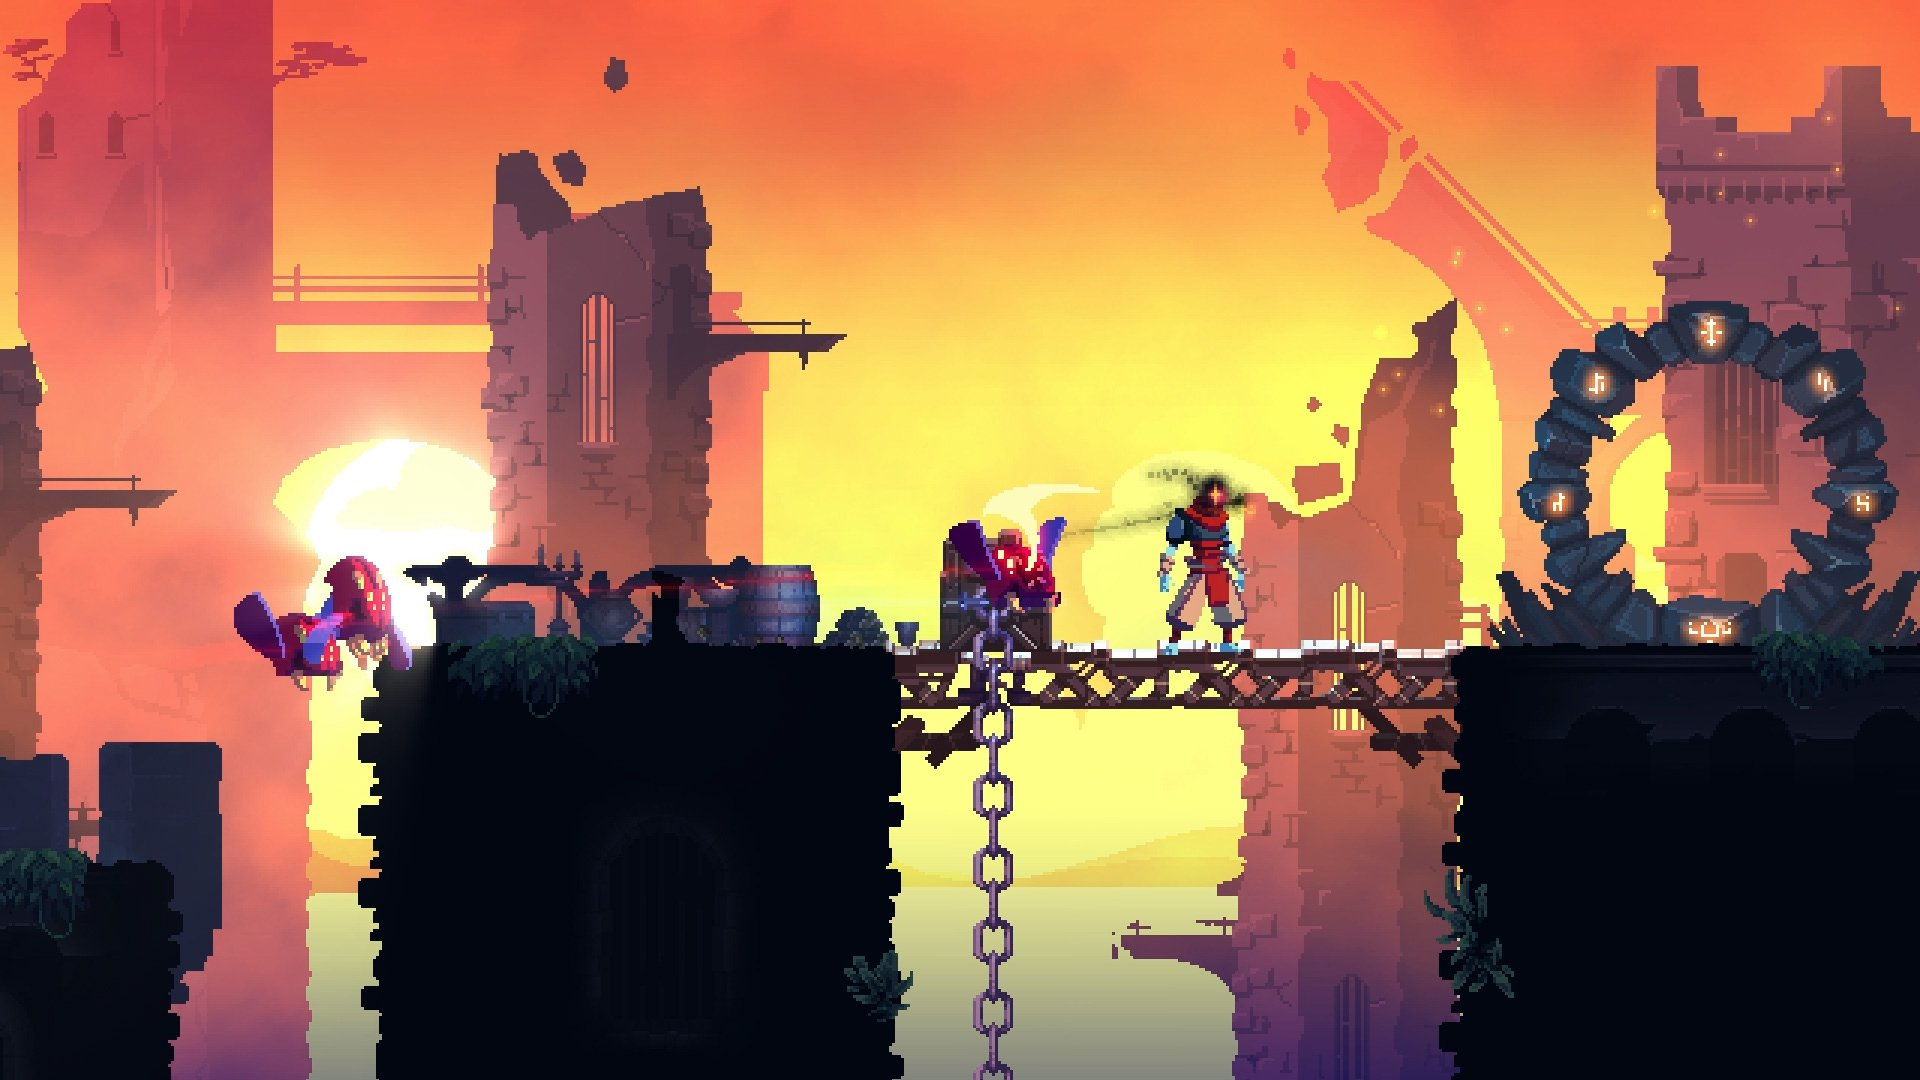 Castlevania-inspired roguelike Dead Cells hits Steam soon screenshot